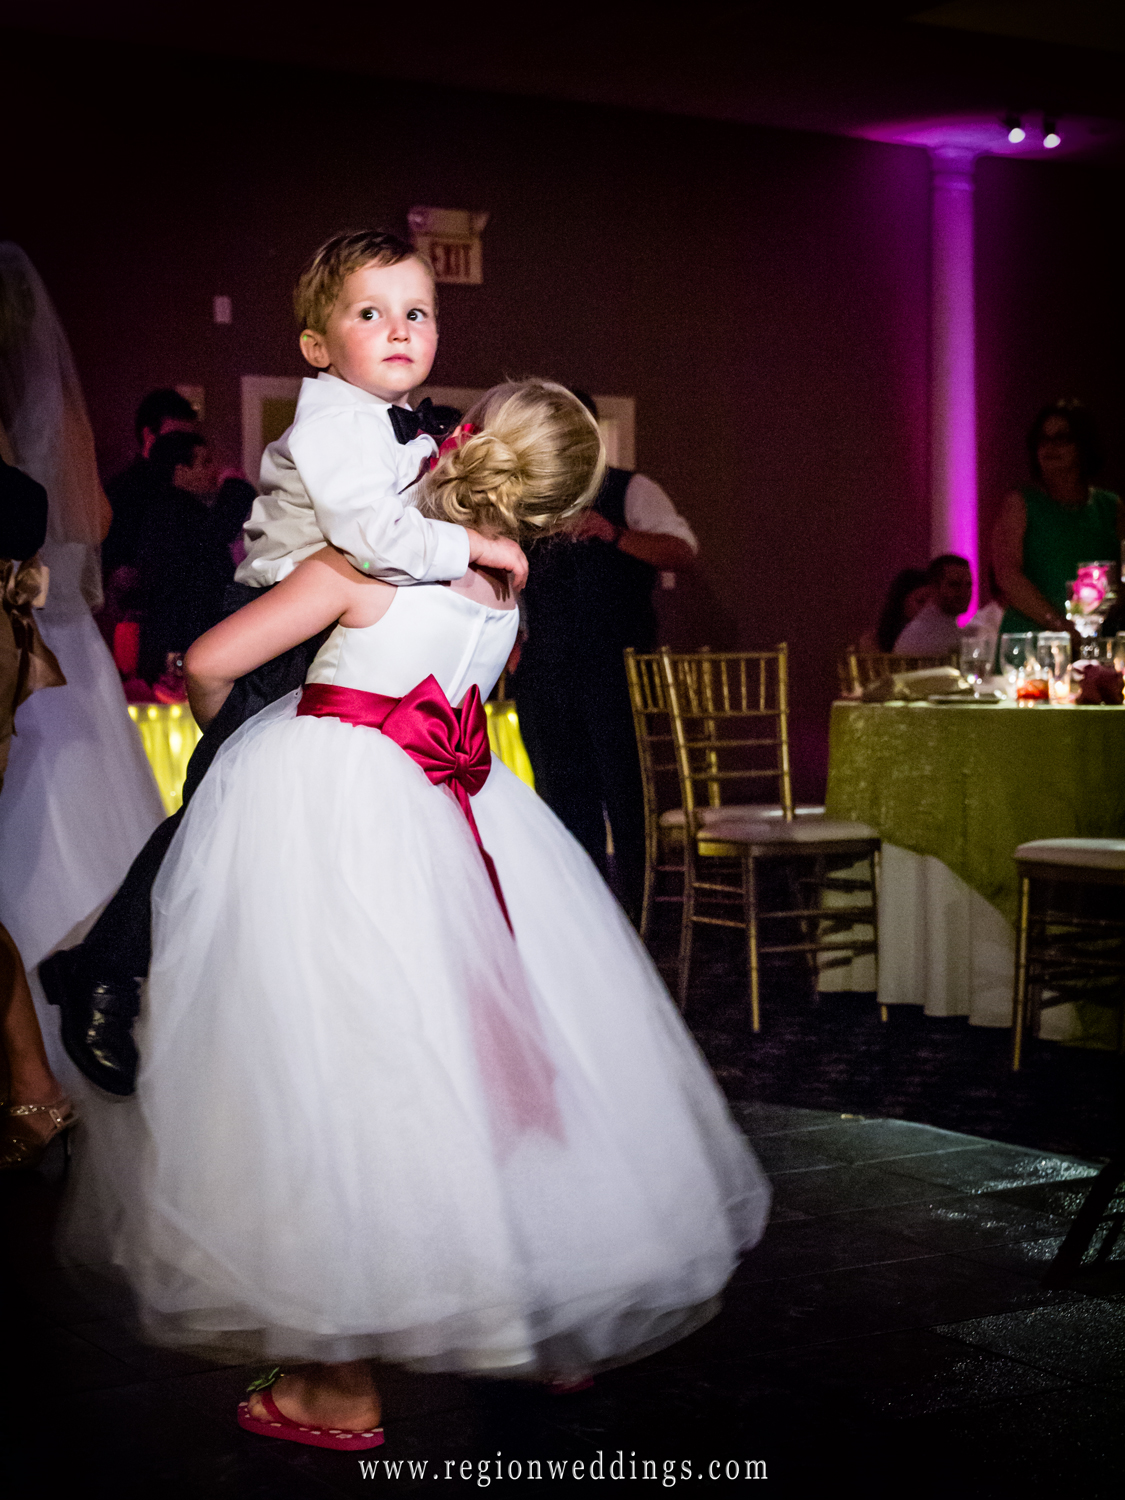 The ring bearer and flower girl have fun while dancing together.